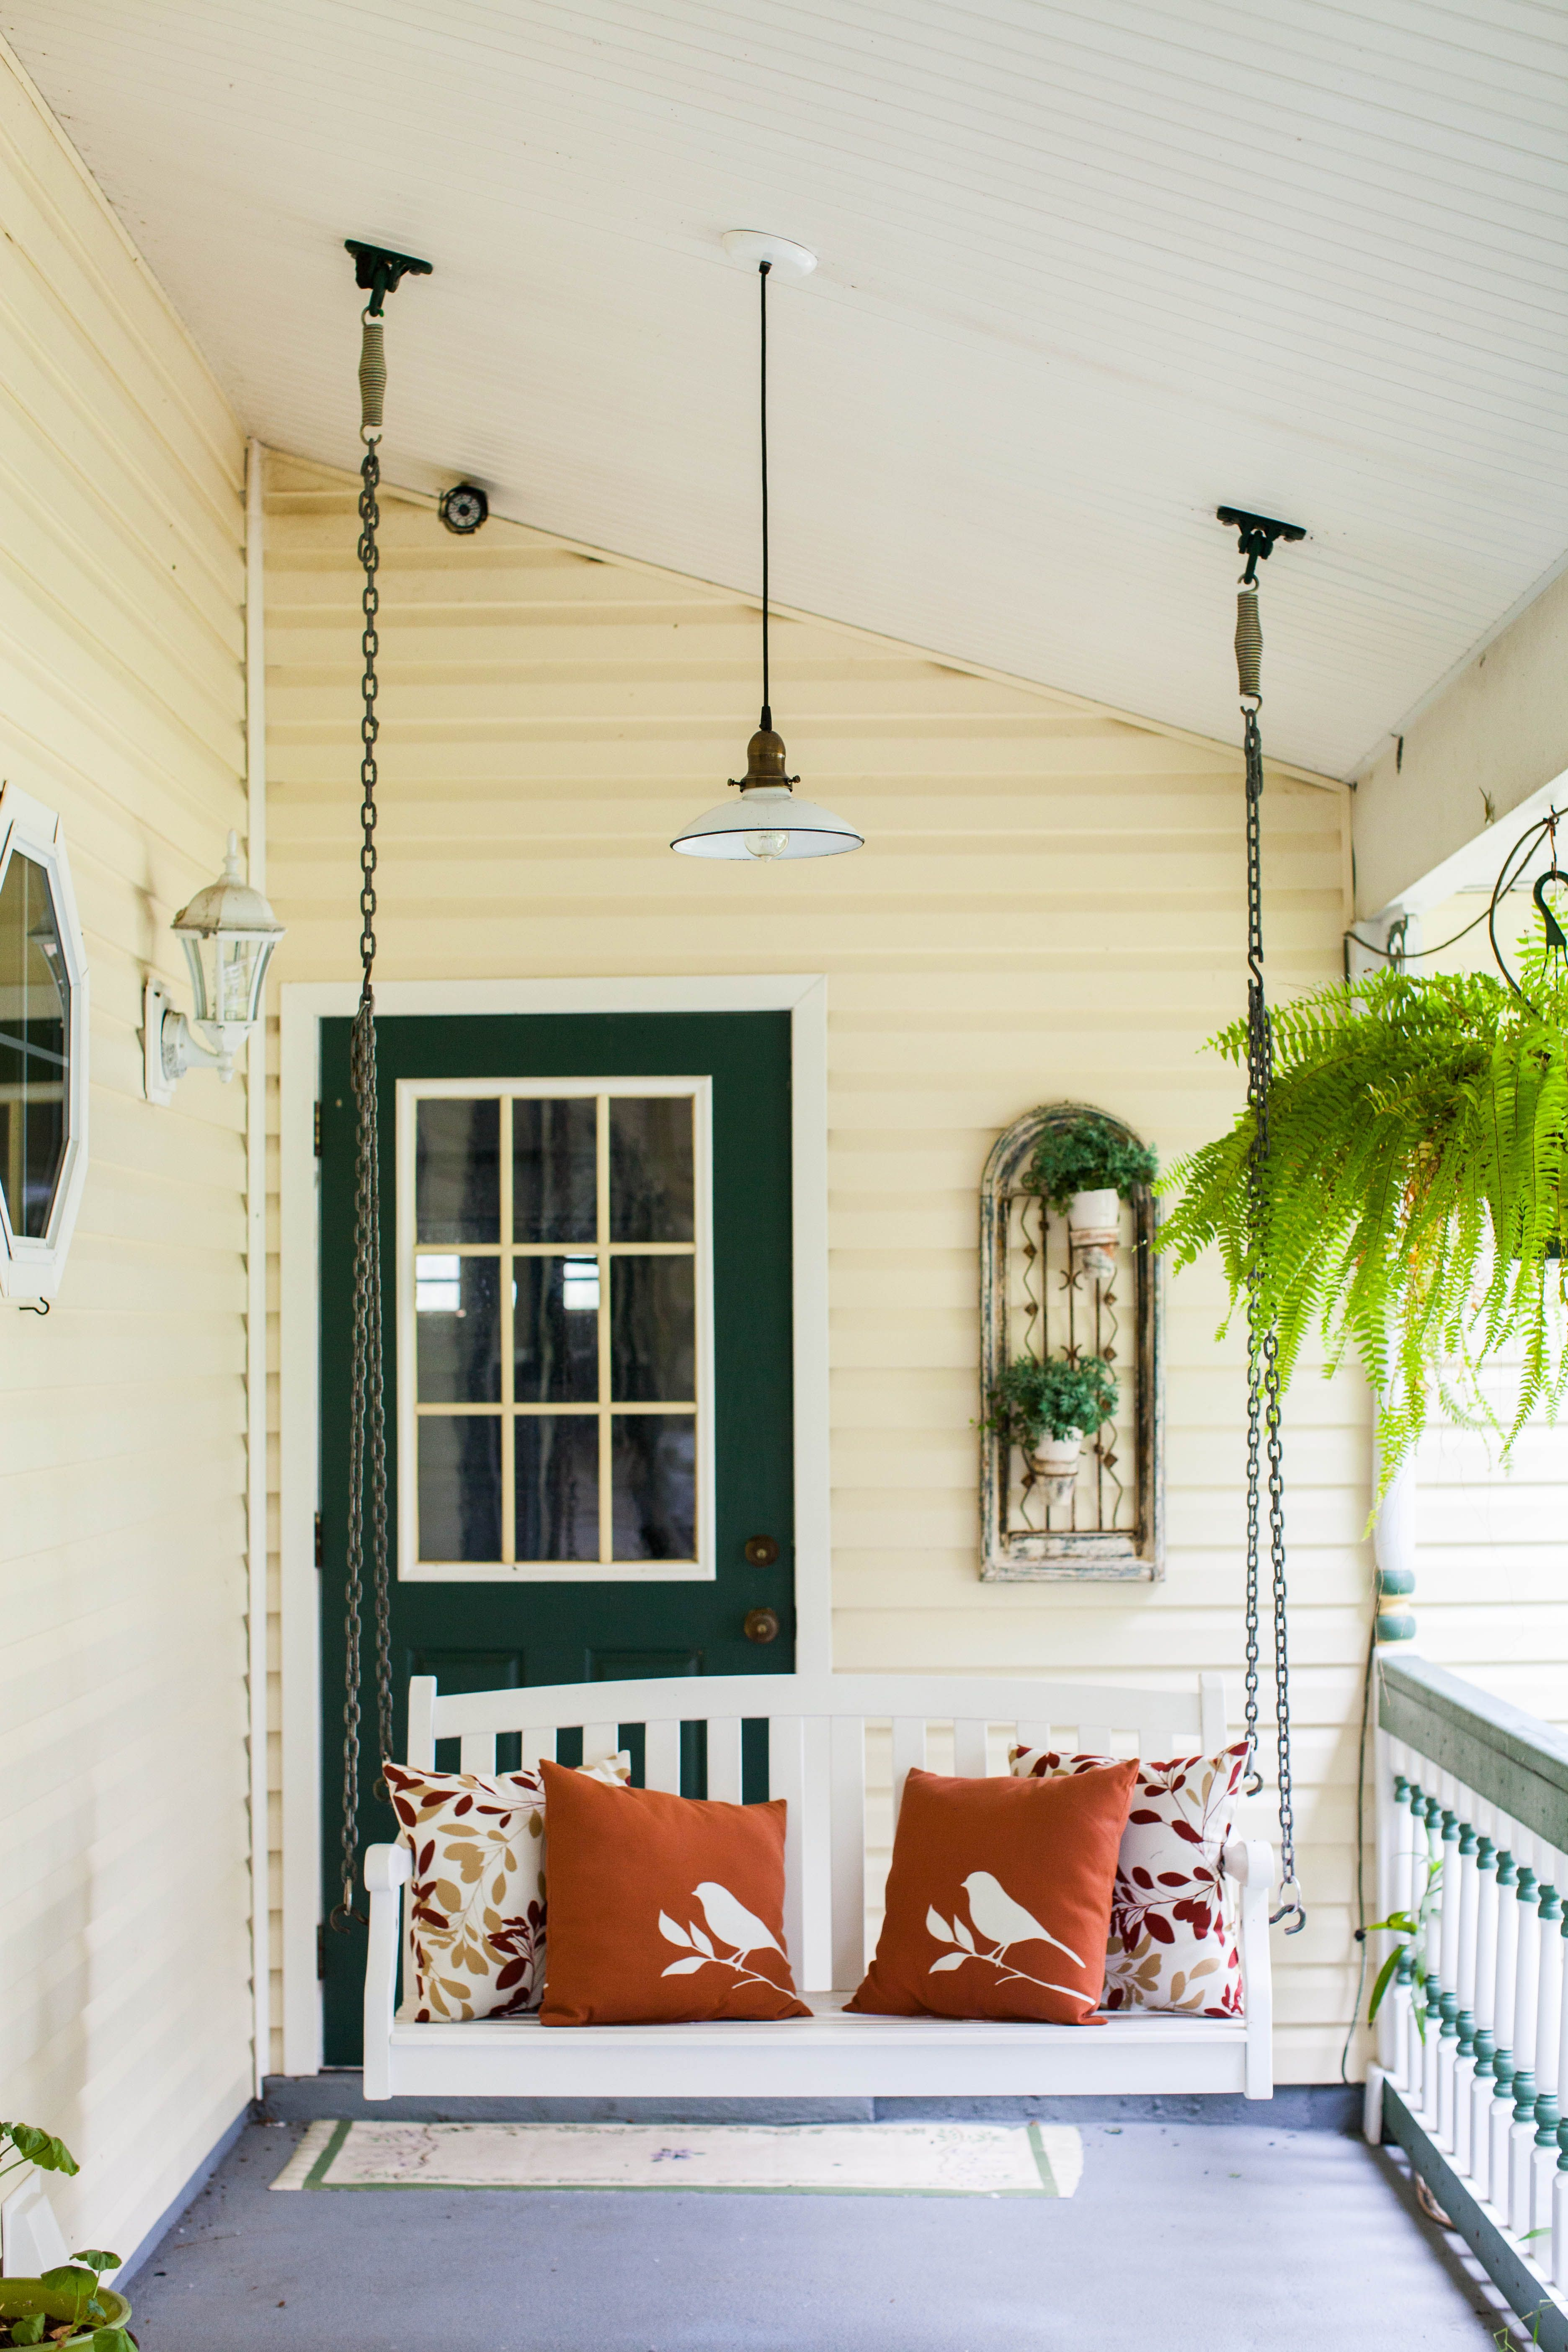 Cozy porch pretty pendant lighting all it needs is a